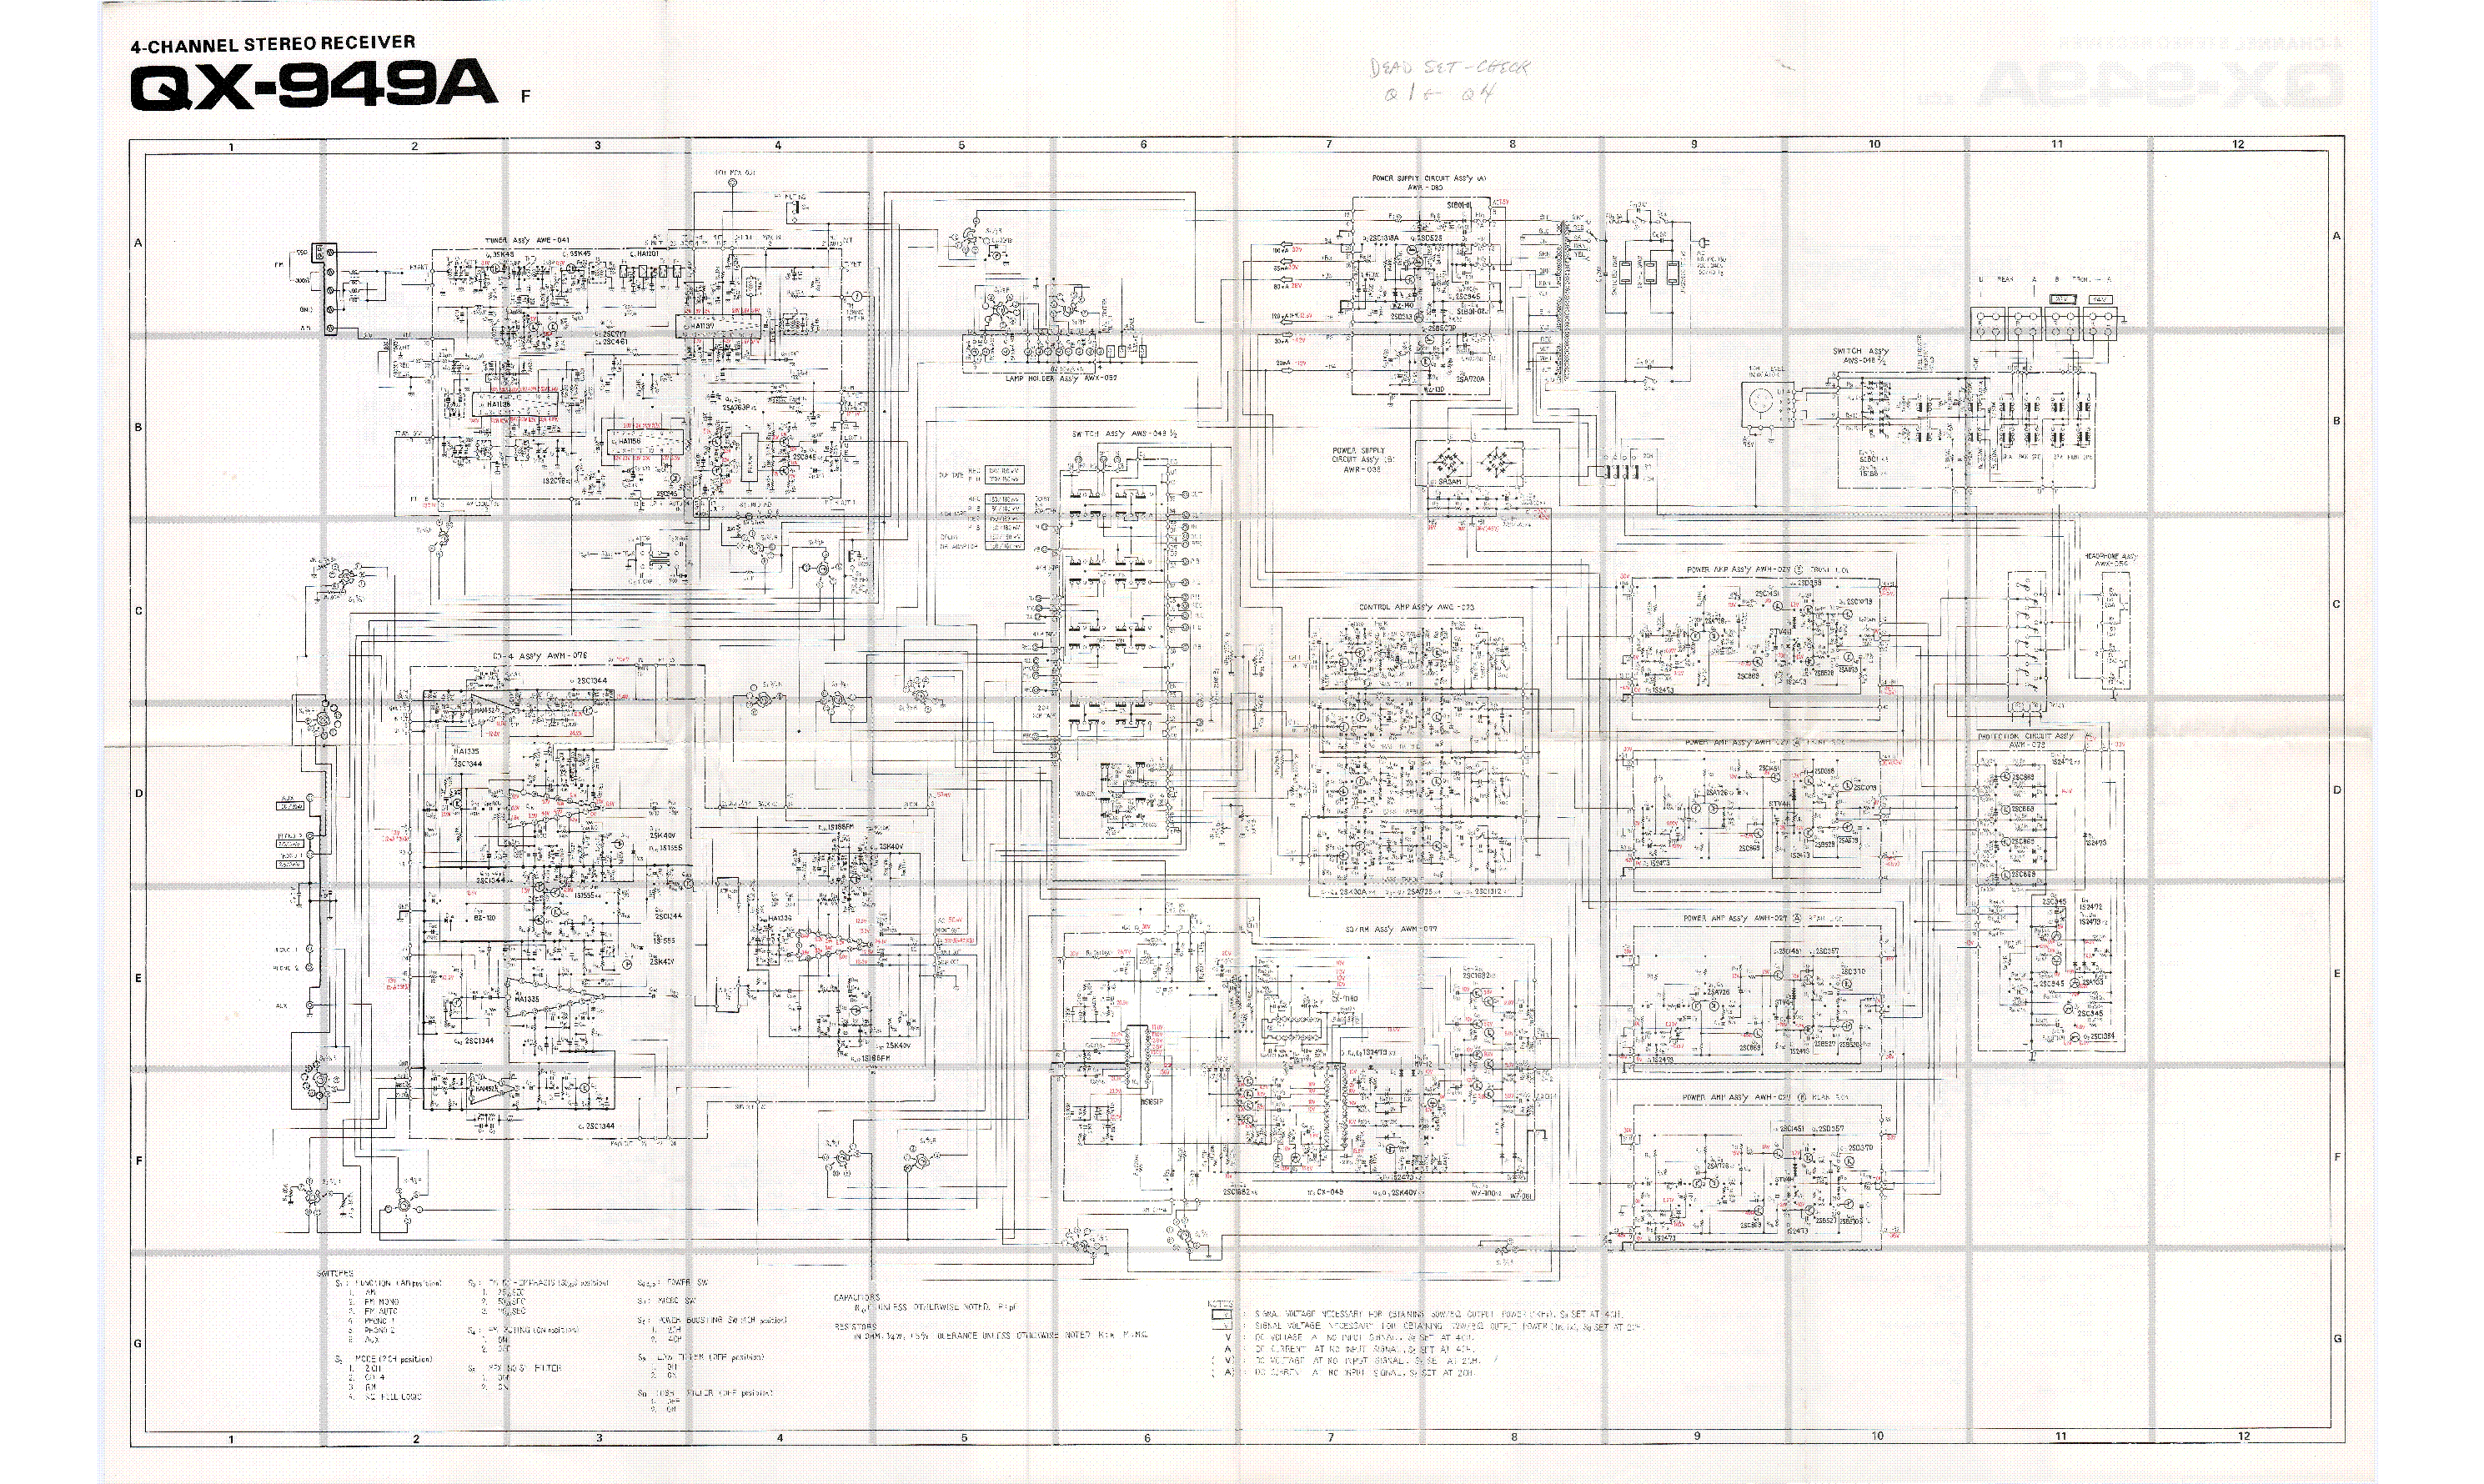 Unicell Wiring Diagram additionally Morgan 4 Wiring Diagram also Unicell Wiring Diagram moreover Tennant Wiring Diagram likewise Wiring Diagram For Pioneer X2700bs. on unicell wiring diagram